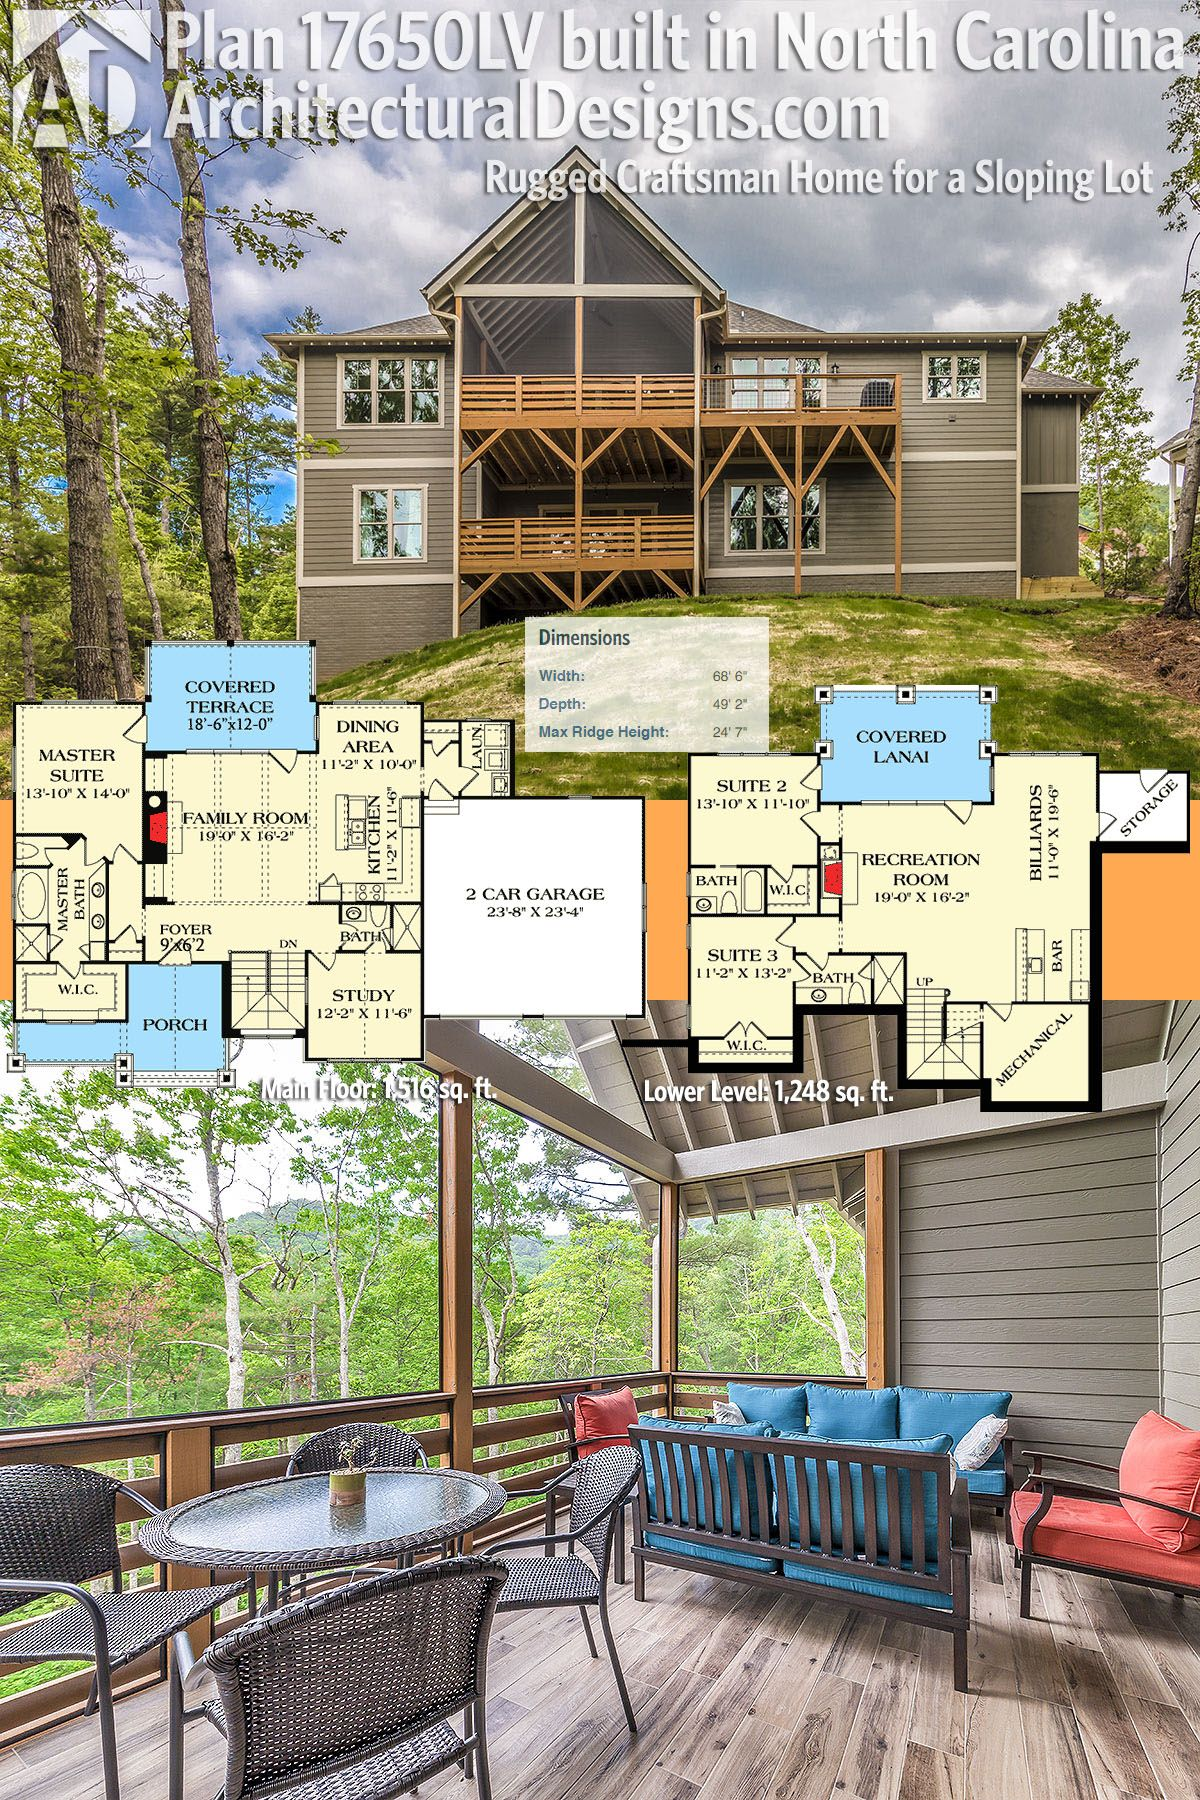 Architectural Designs House Plan 17650LV perfect